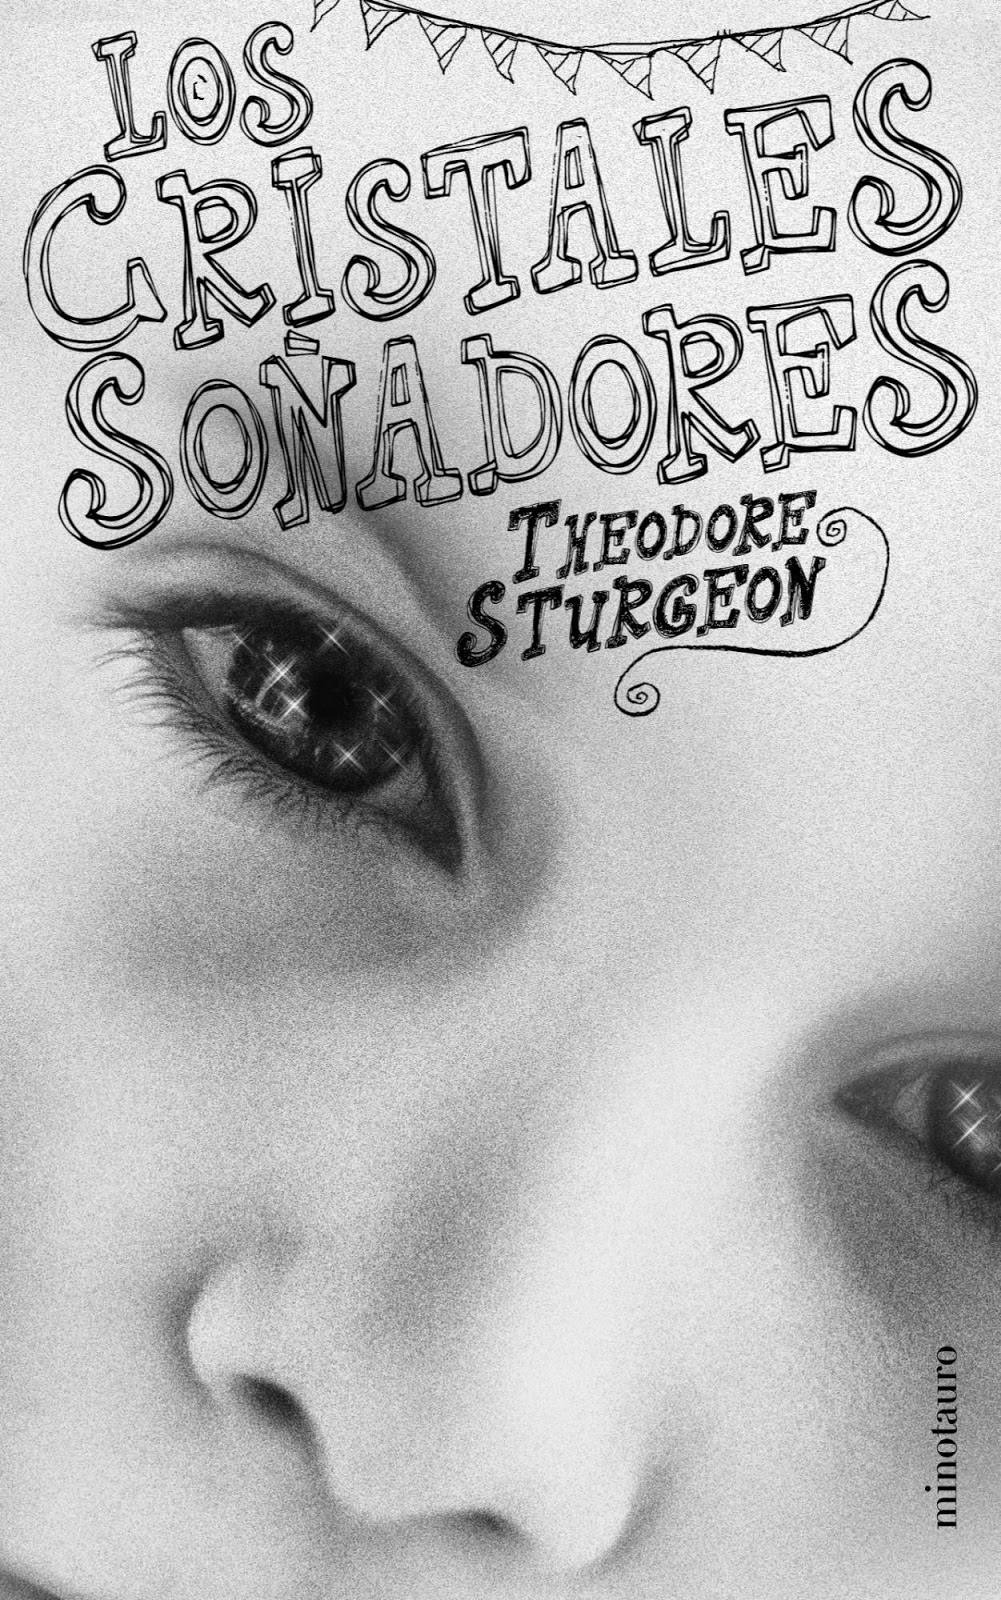 Cristales soñadores Theodore Sturgeon